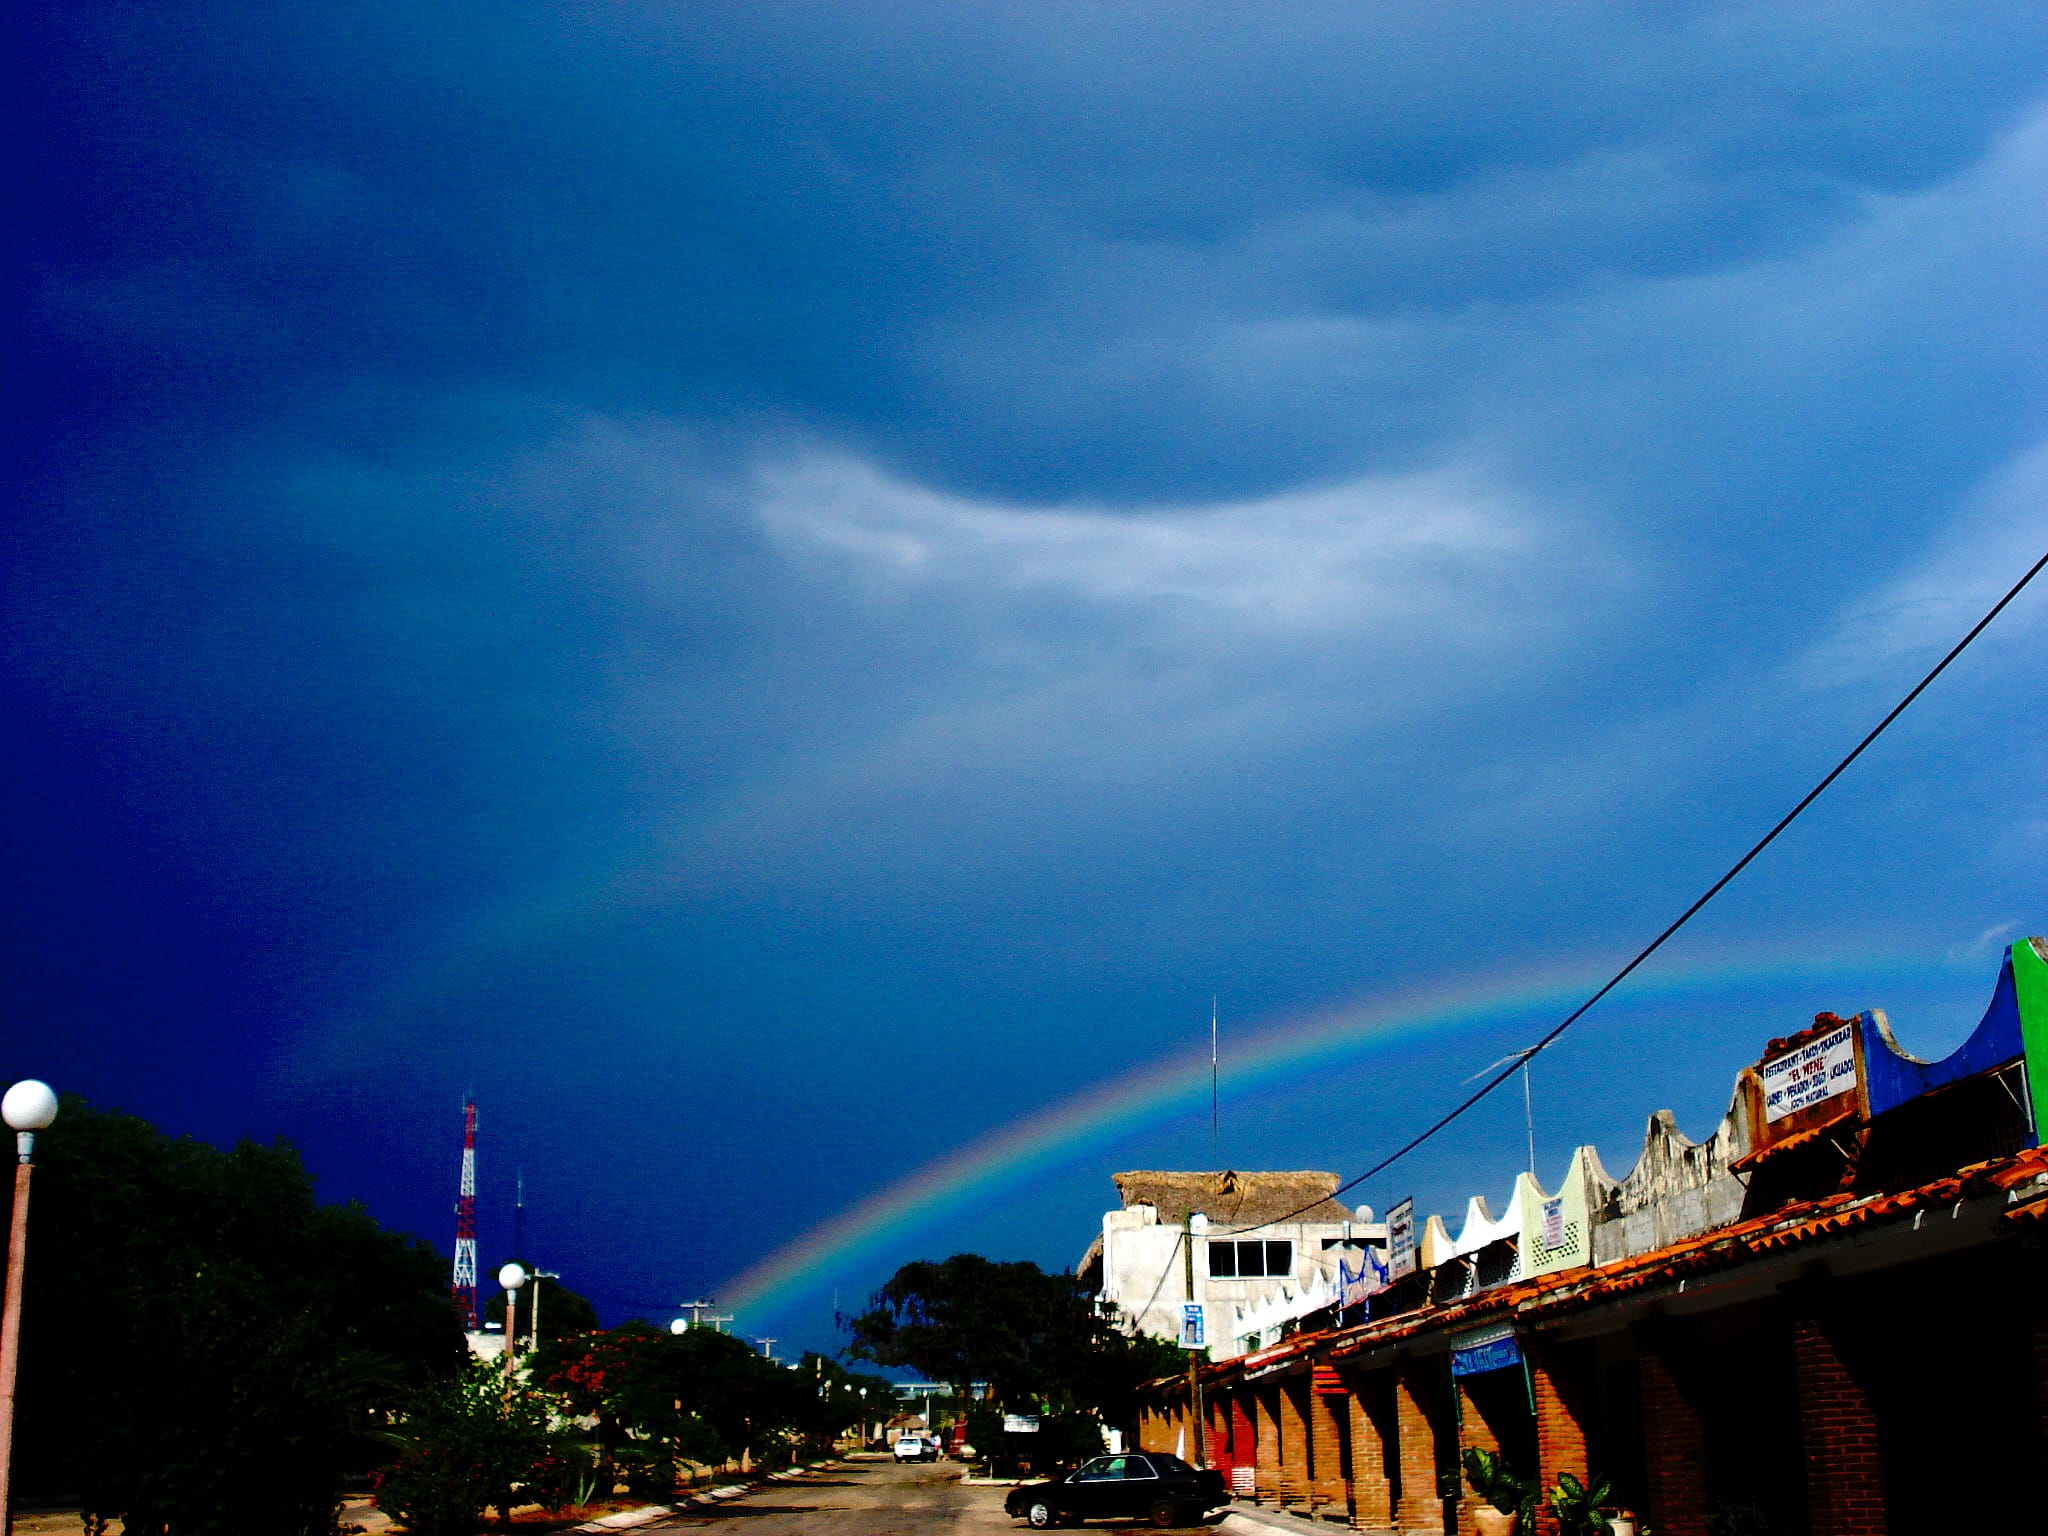 rinconada-rainbows-by-avb